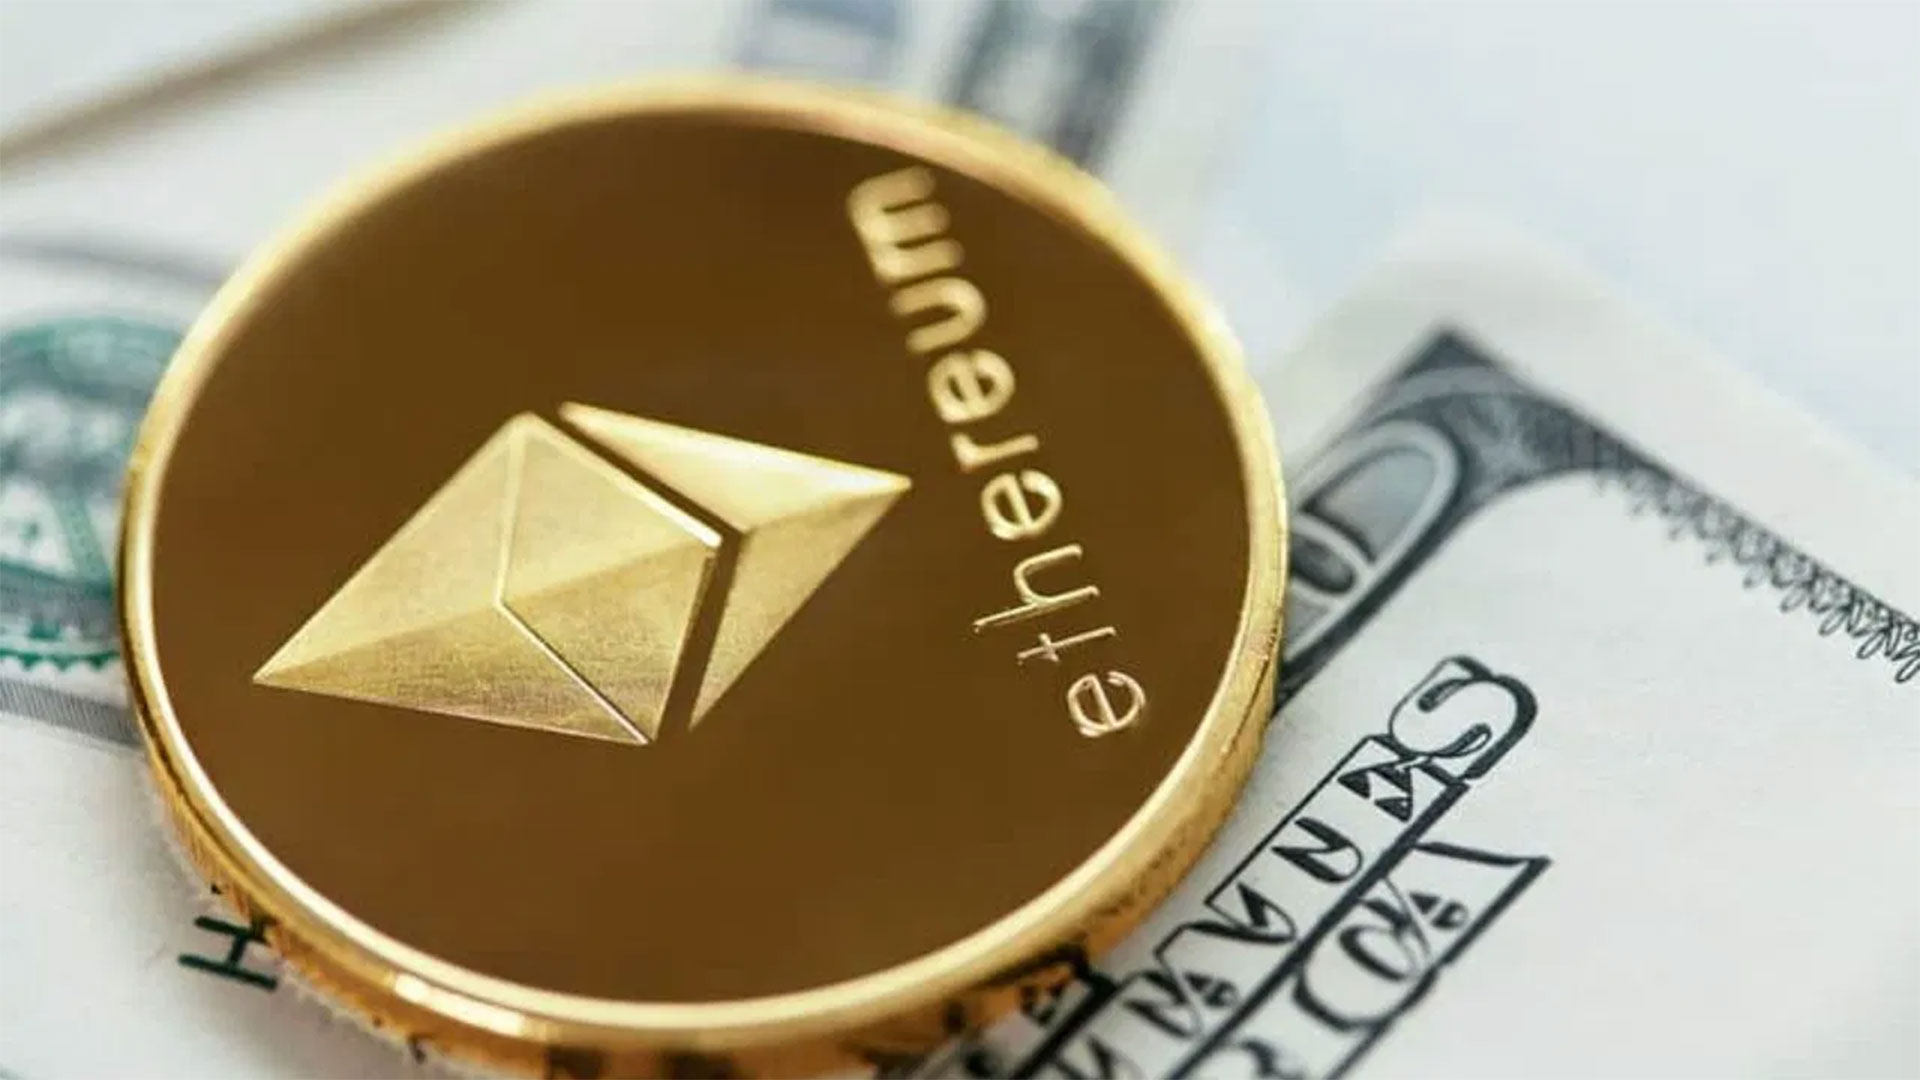 Slow and non-stop Ethereum continues to grow and maintain its second place among cryptocurrencies